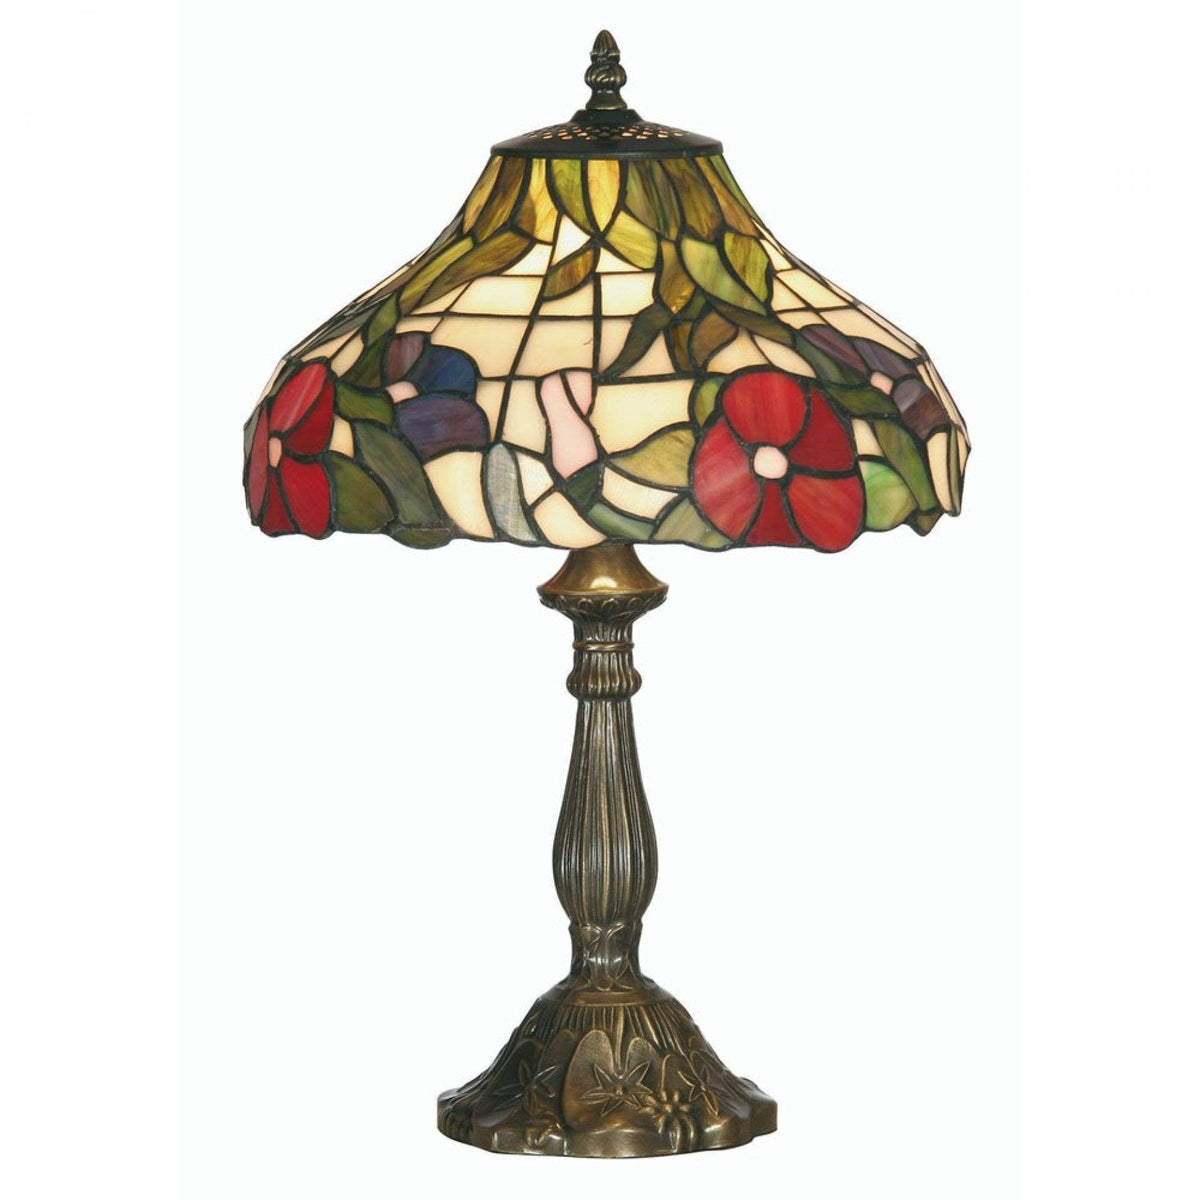 Medium Tiffany Lamps - Oaks Tiffany Peonies Medium Table Lamp OT 1345/12TL